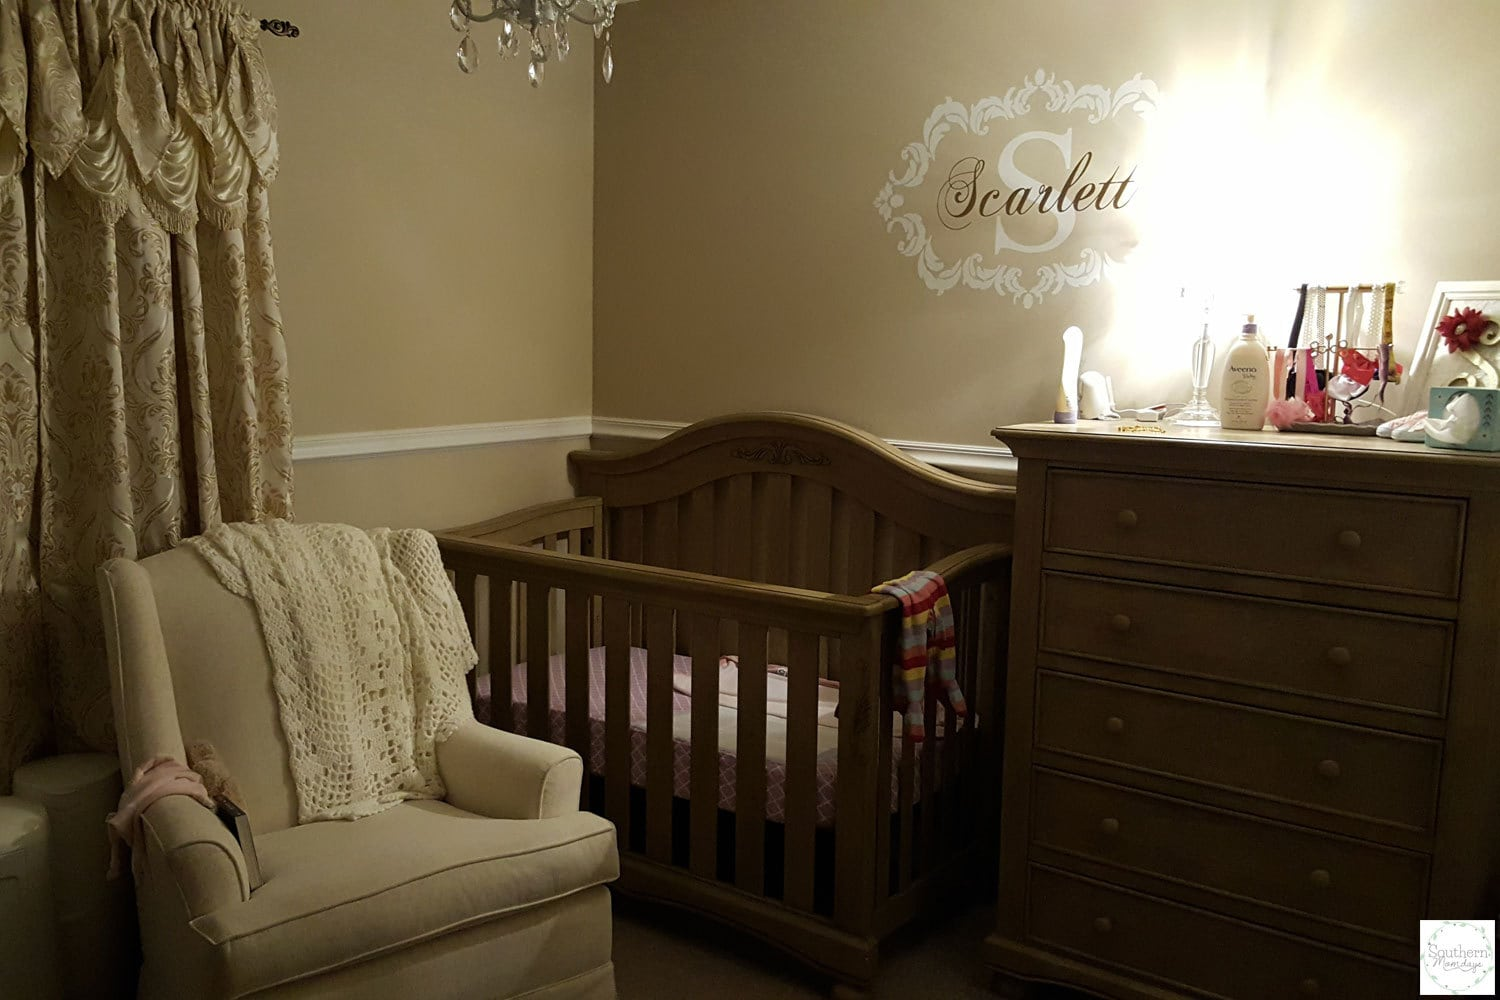 Nursery prepped for nighttime sleep using sleep-training advice, featured on the Southern Momdays blog